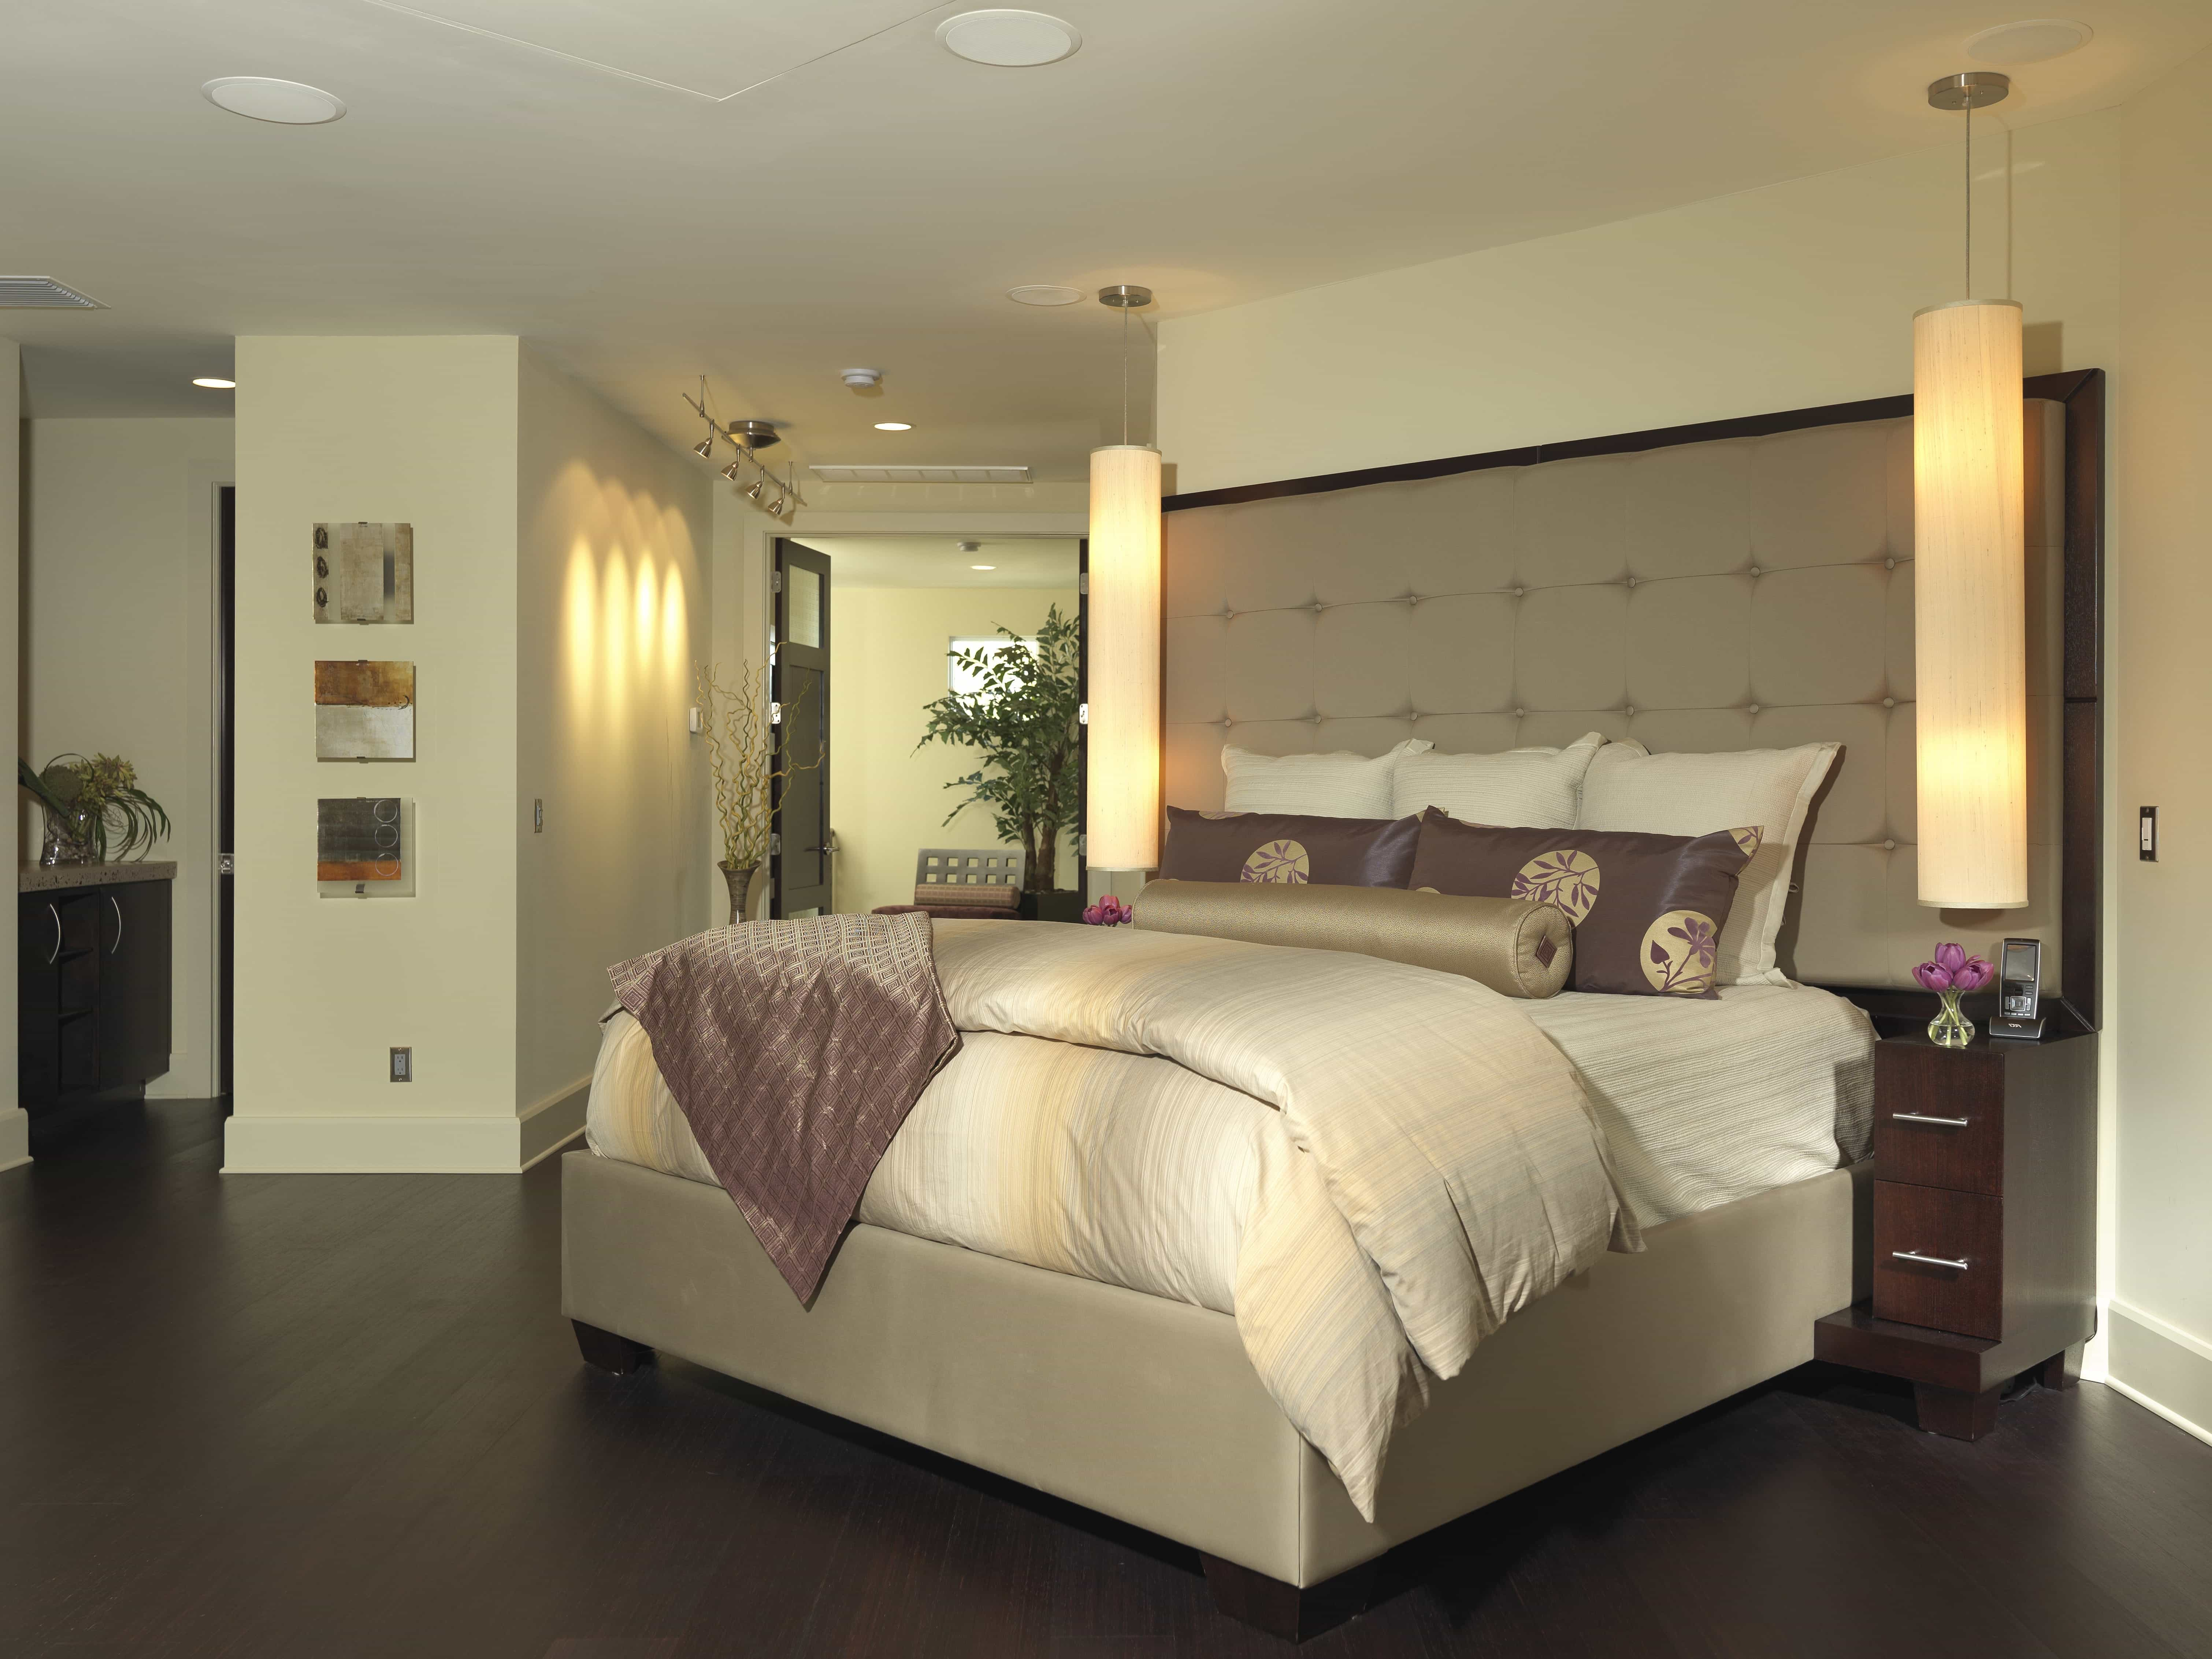 Neutral Contemporary Bedroom With Purple Asian Inspired Accents (View 12 of 32)